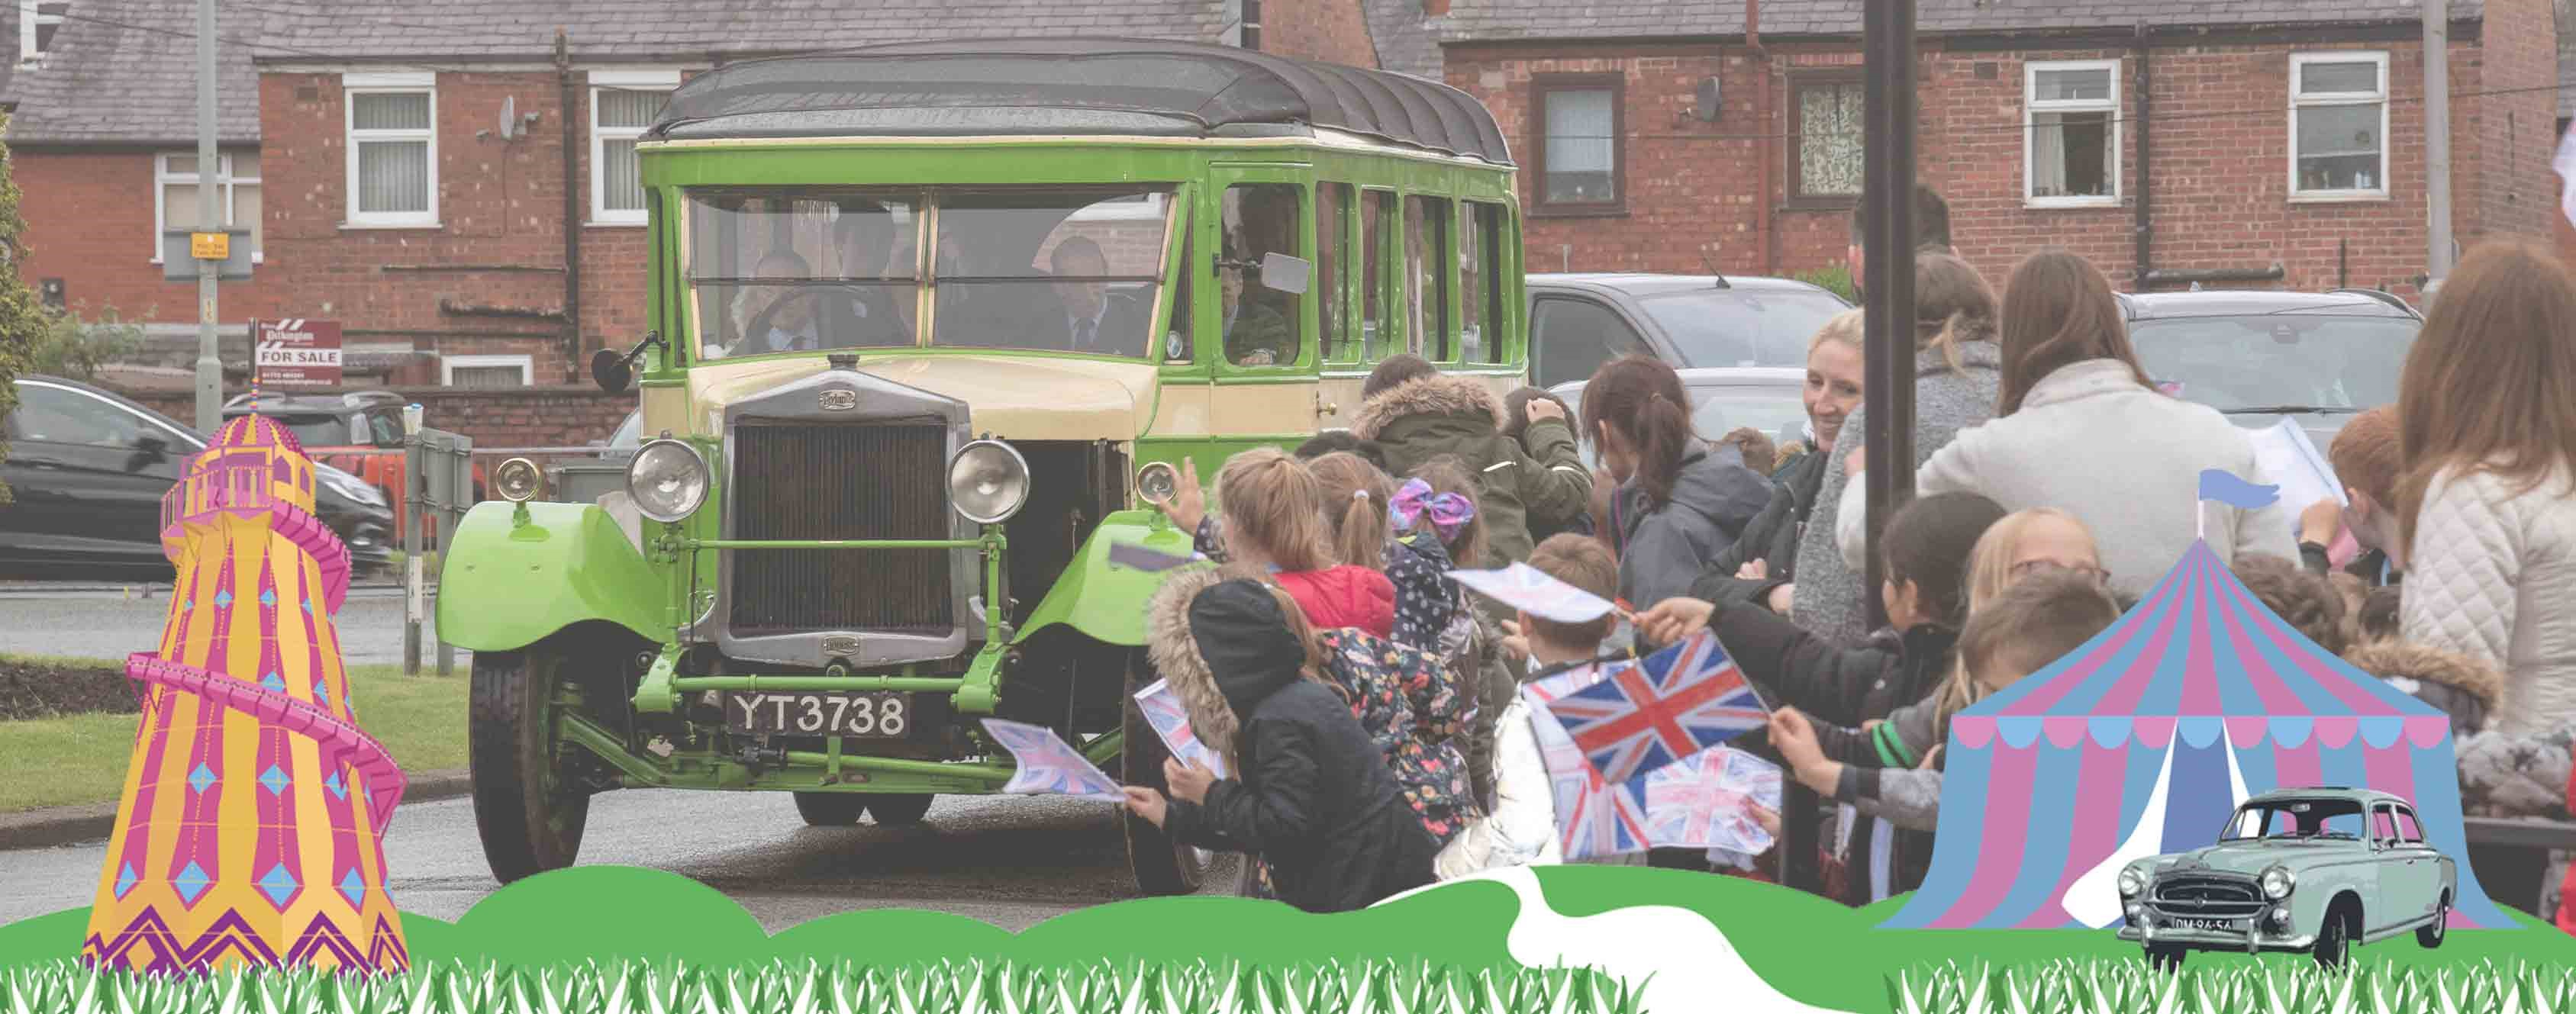 Royal Vehicle to take aprt in Leyland Festival